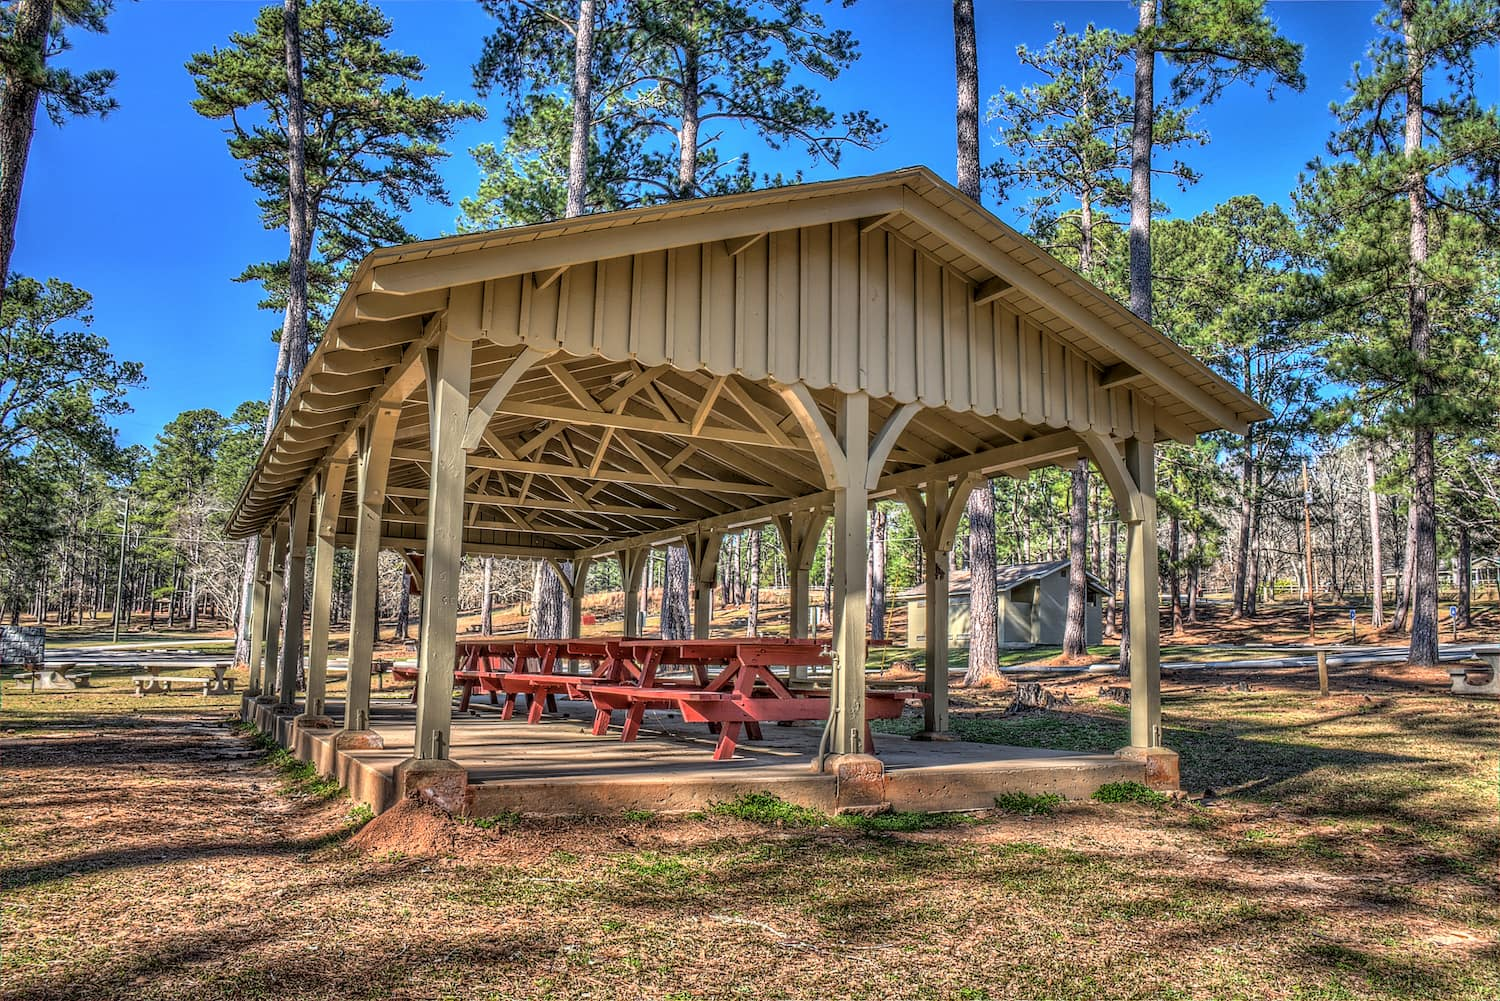 6 Diverse Destinations for a Georgia State Parks Camping Trip